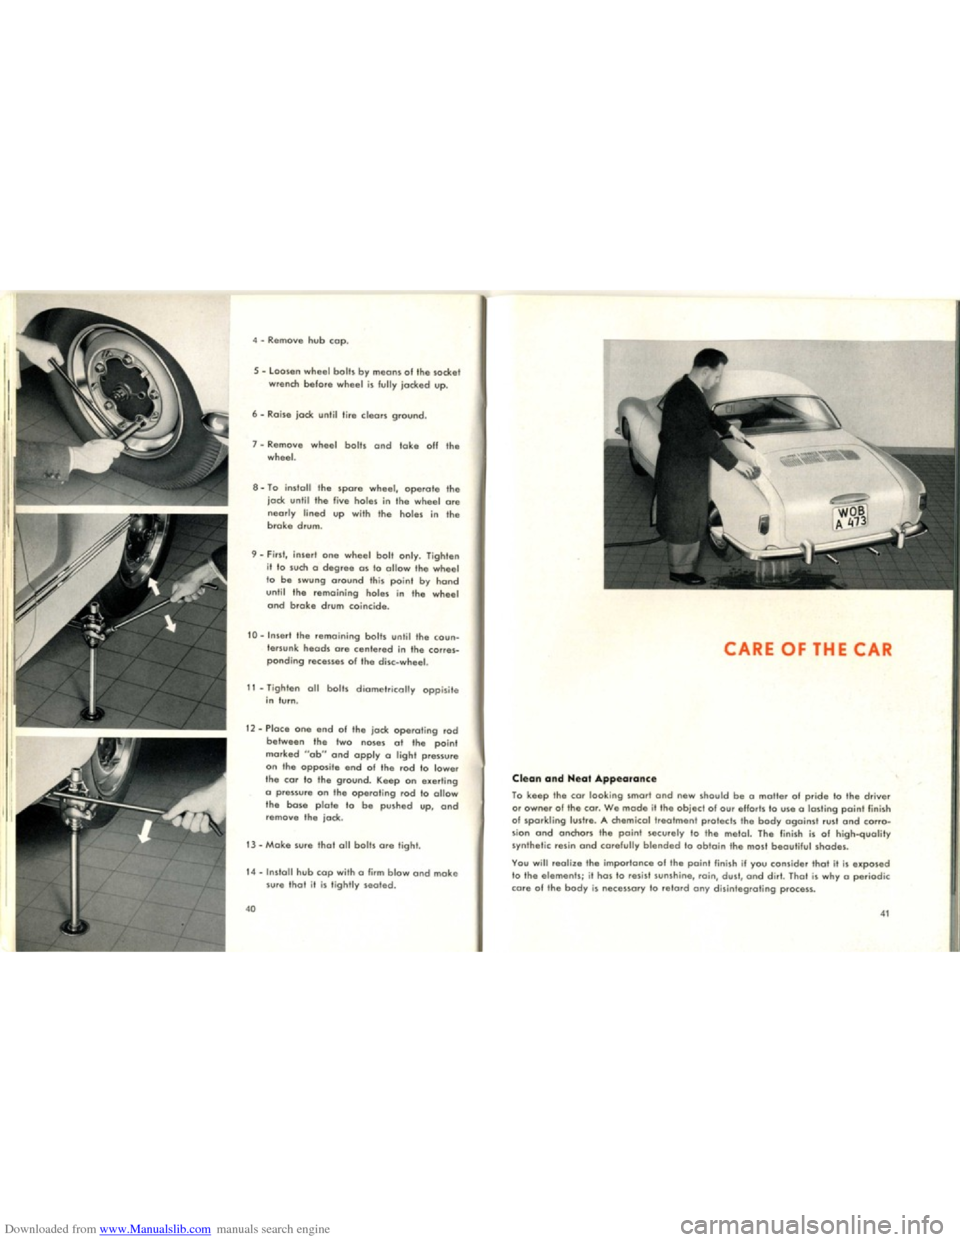 VOLKSWAGEN KARMANN GHIA 1958 1.G Owners Manual, Page 22